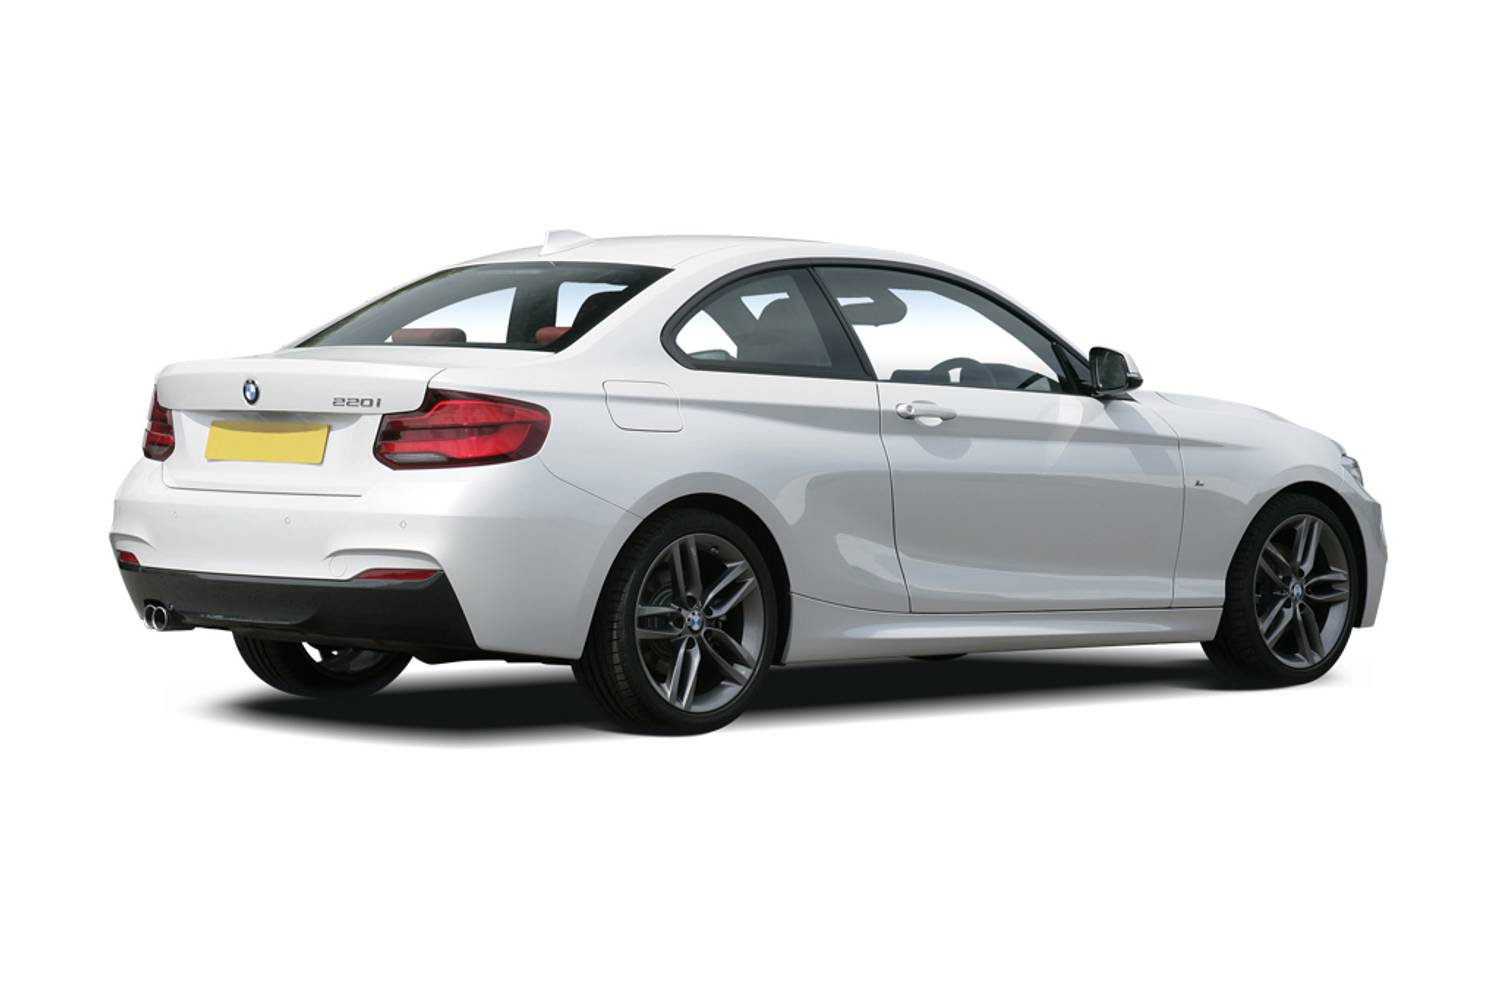 BMW 2 Series Coupe 2dr [Nav] Rear Three Quarter